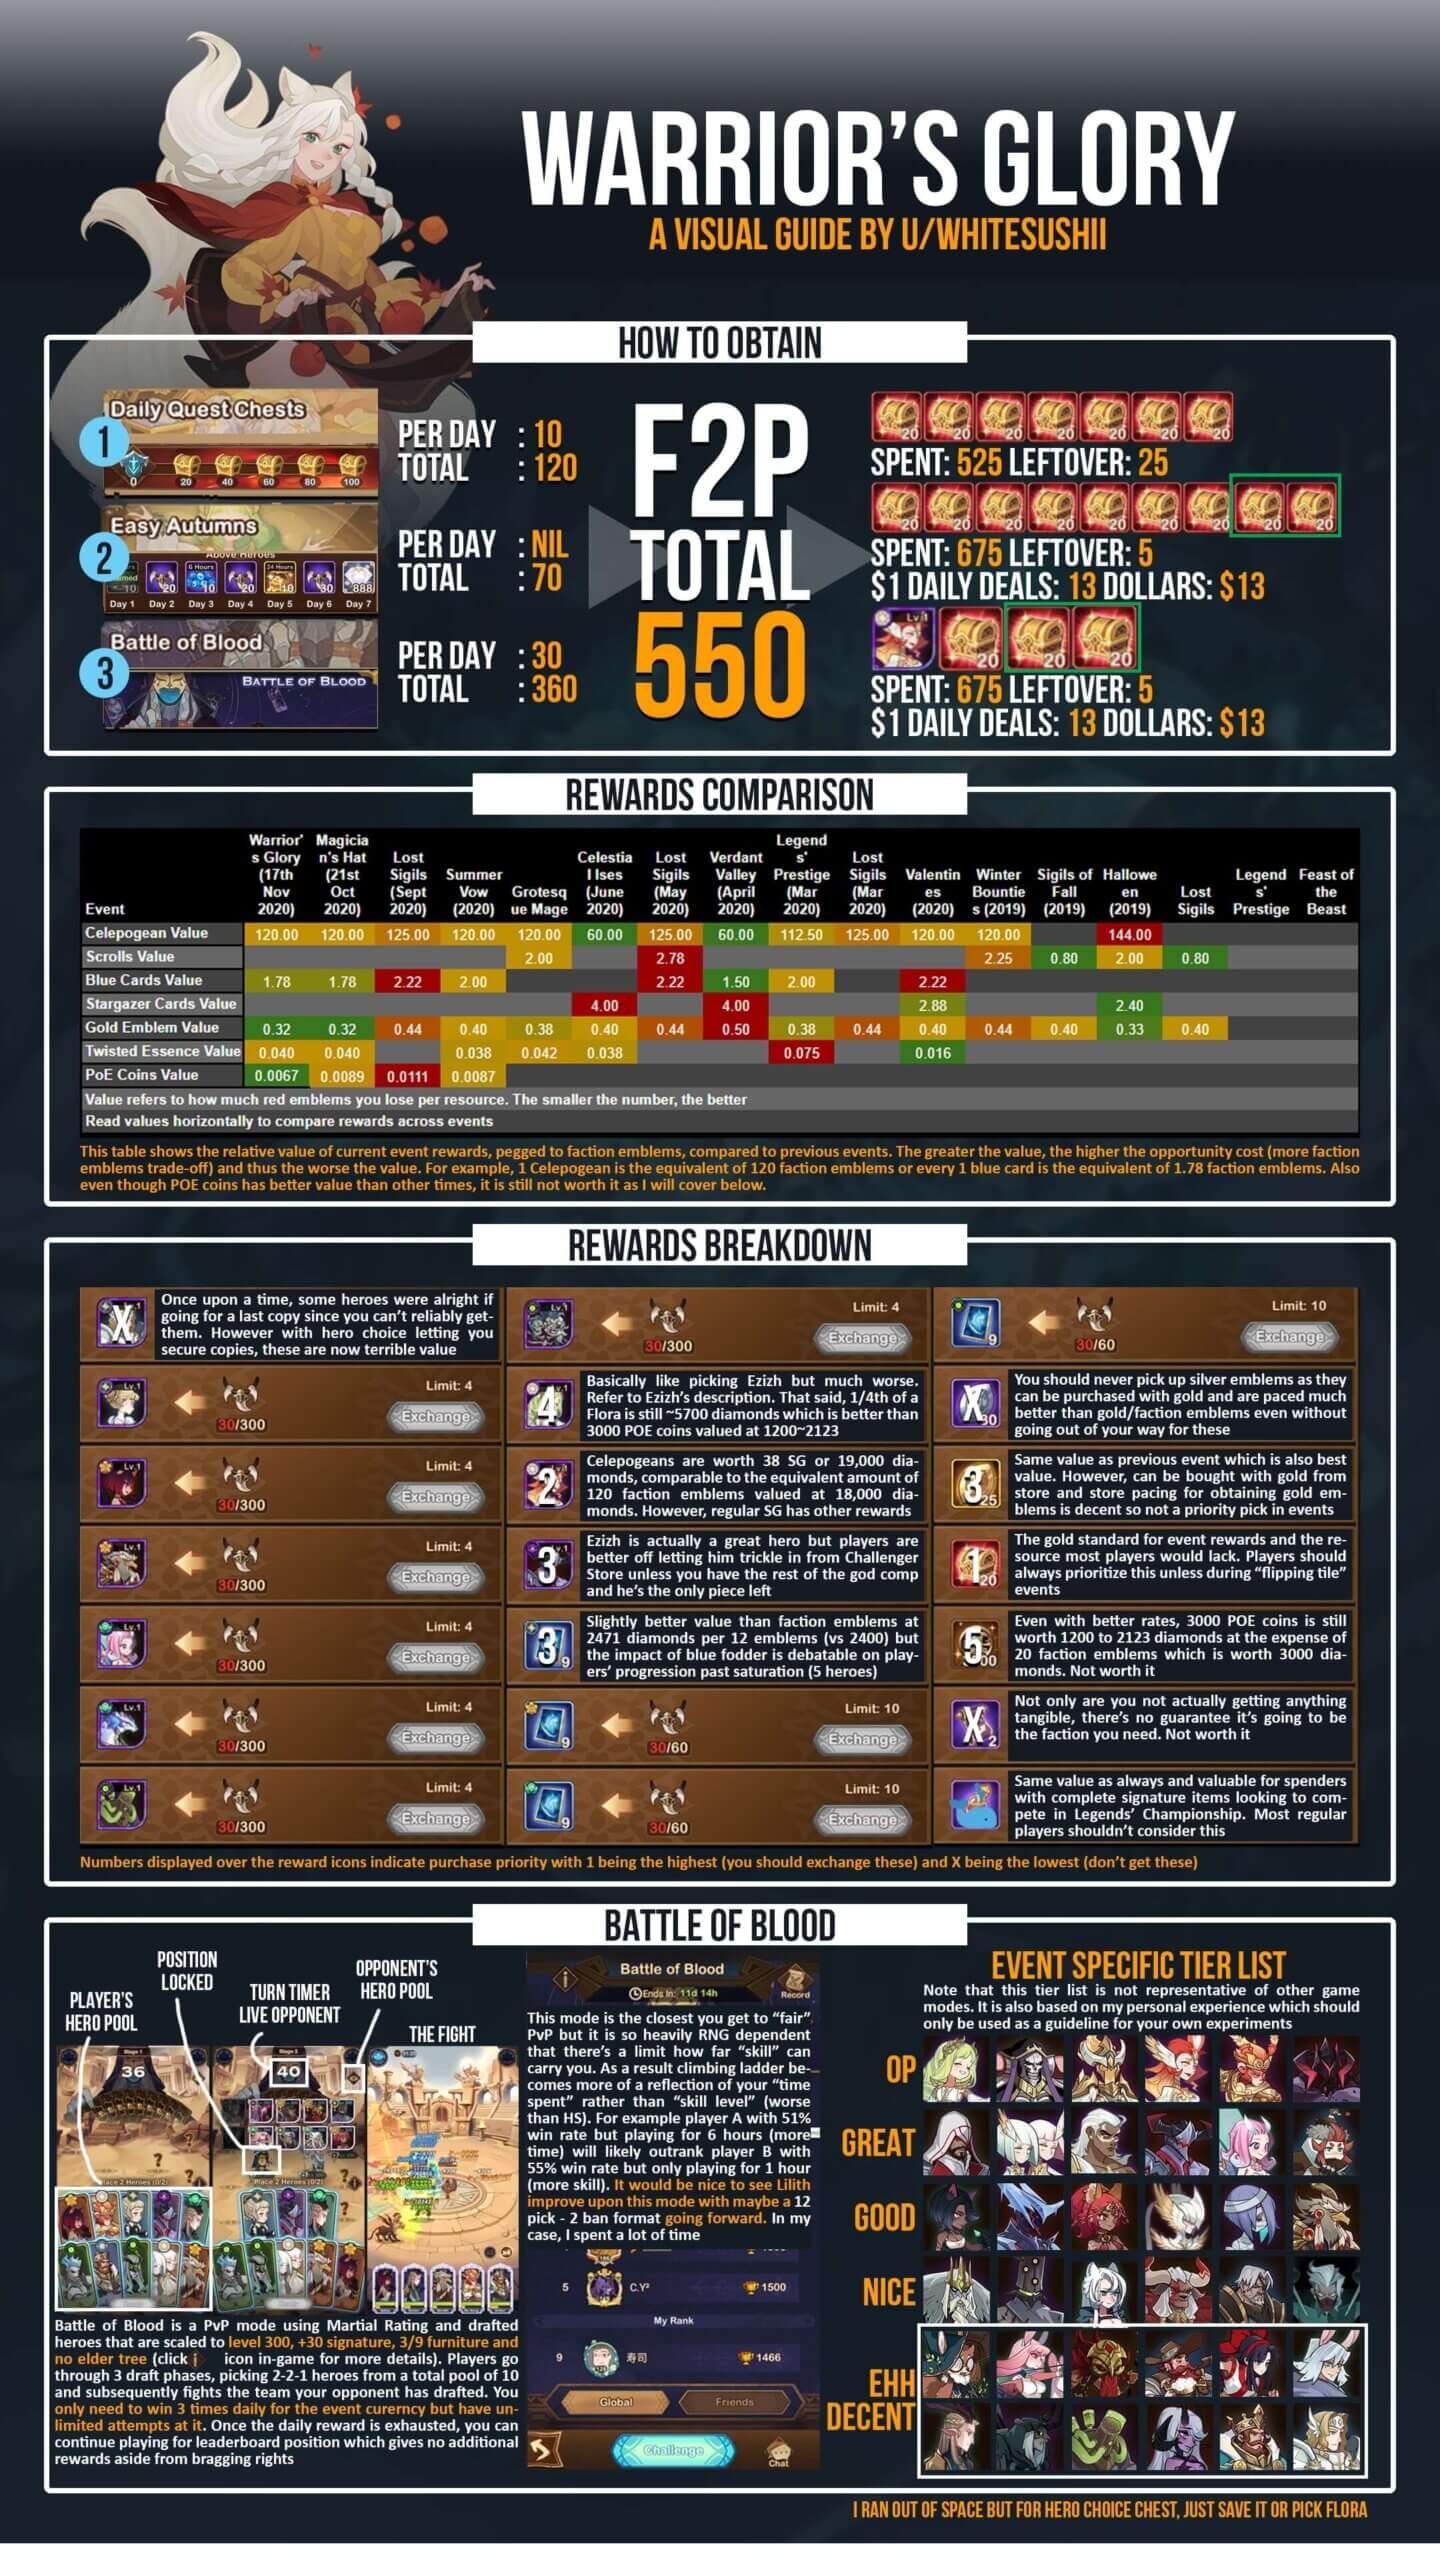 battle of blood infographic (1)